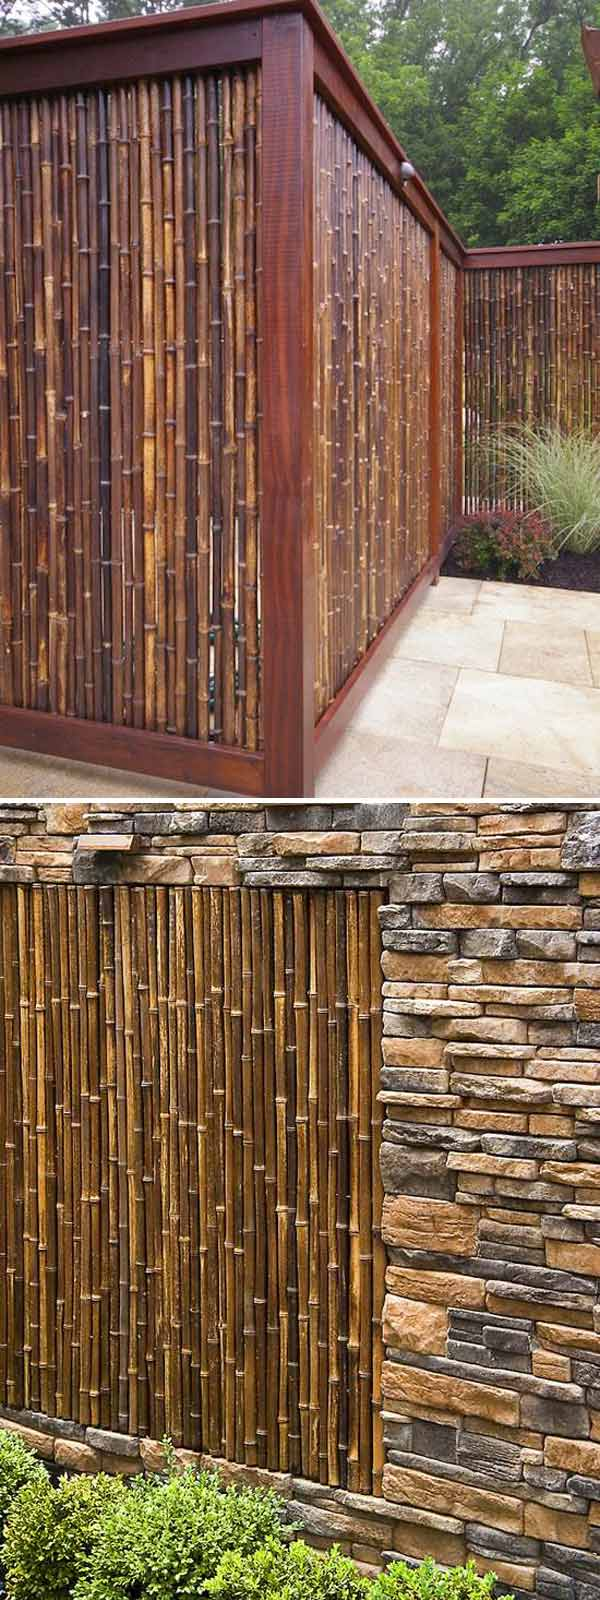 Create-Your-Bamboo-Projects-21-2